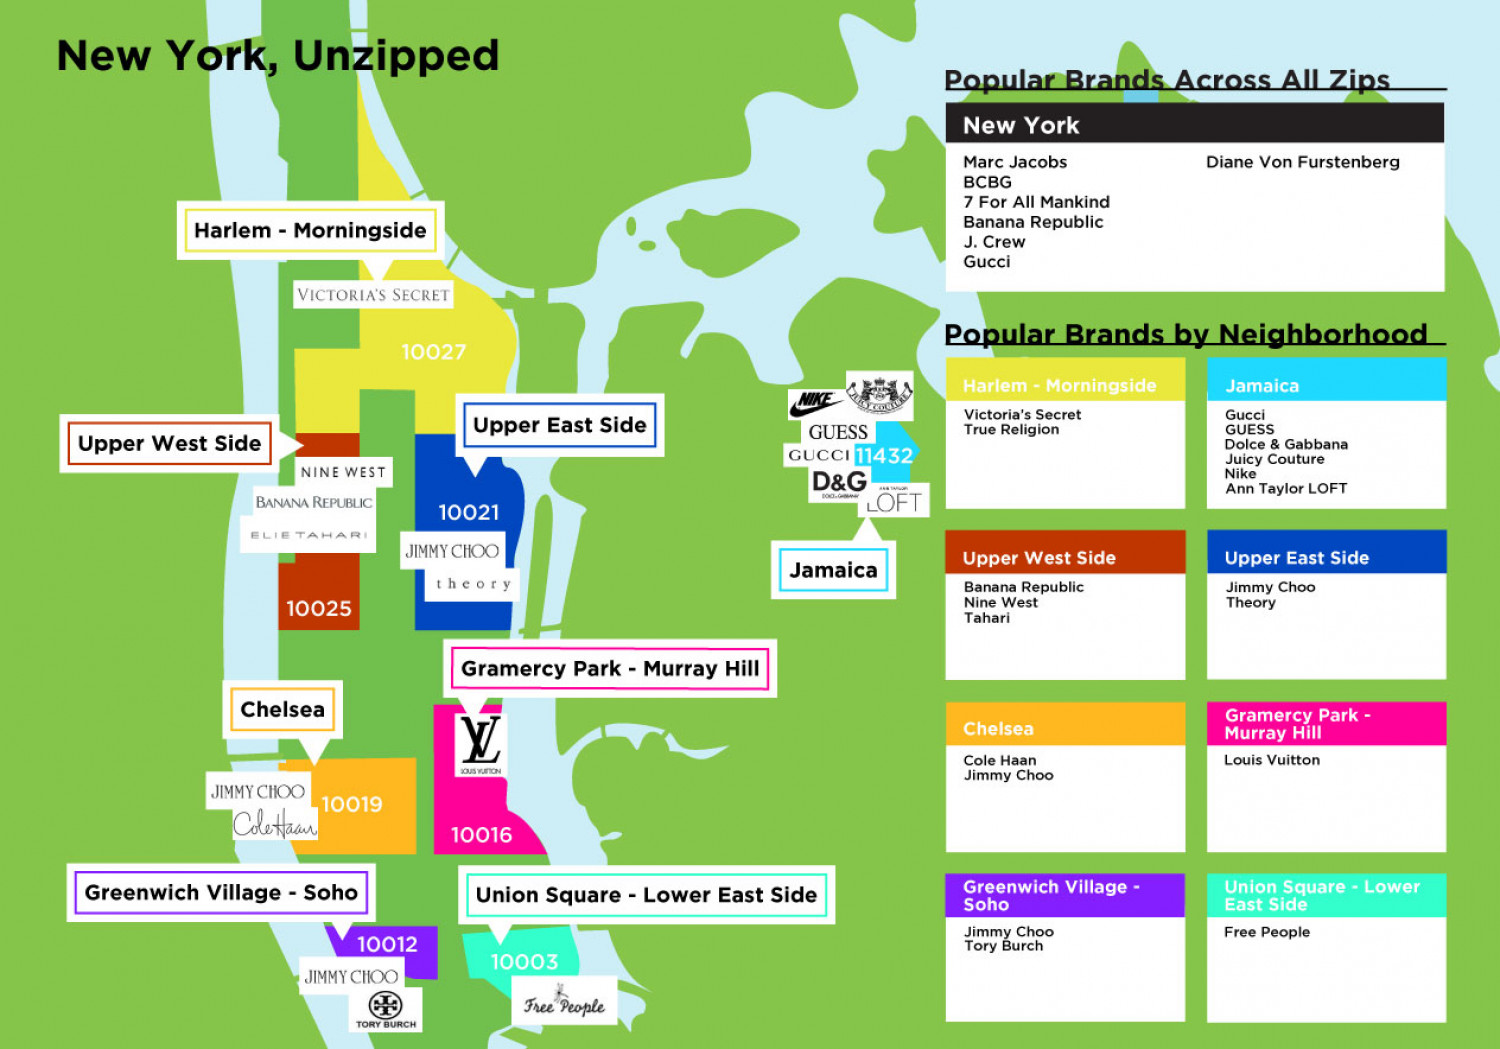 New York Unzipped Infographic